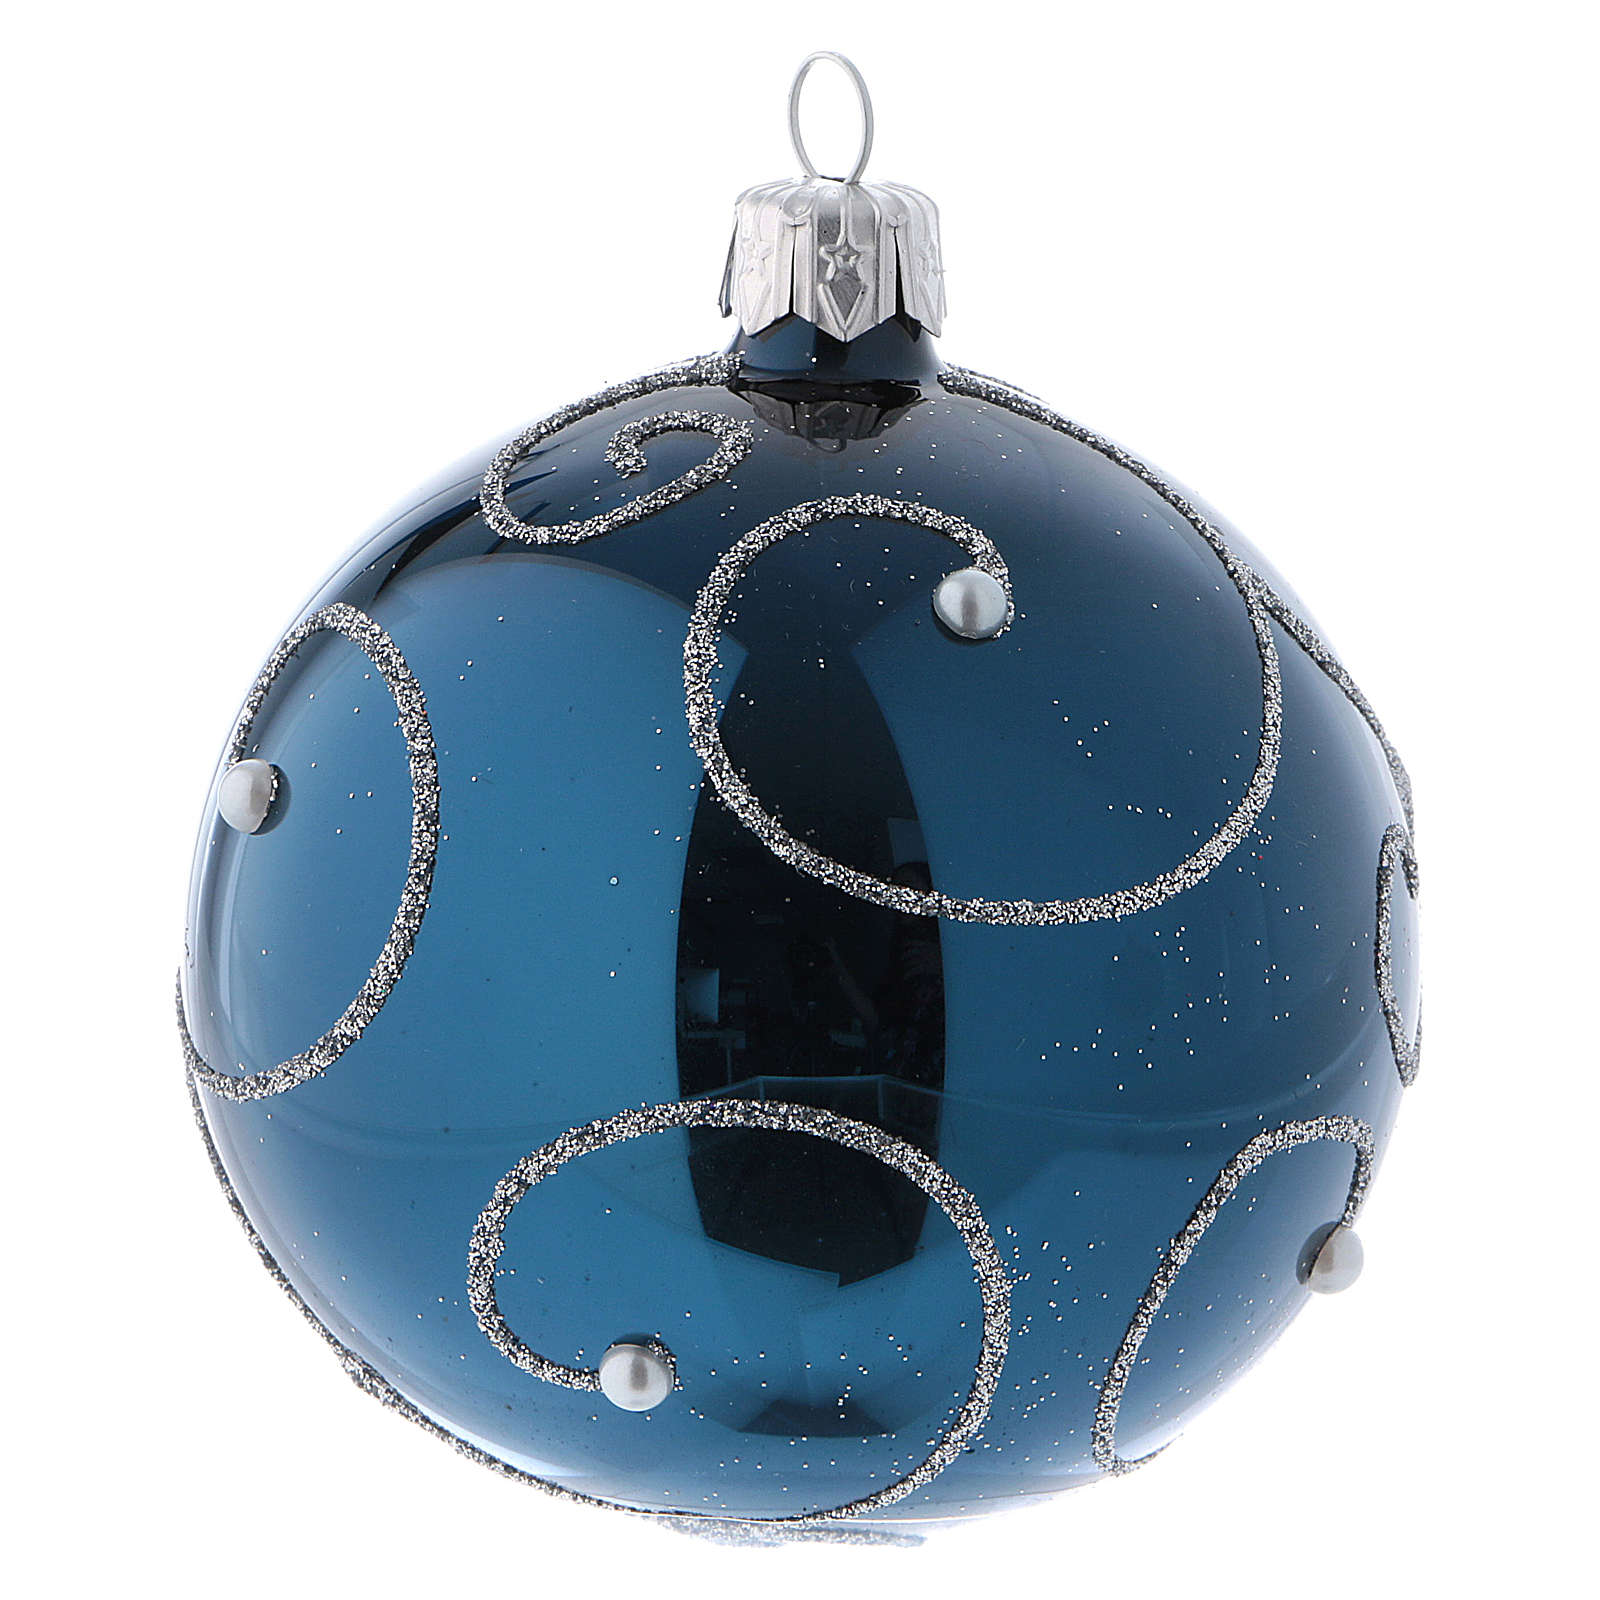 christmas ball in blue glass with glittery silver decorations 80 mm 6 pieces 4